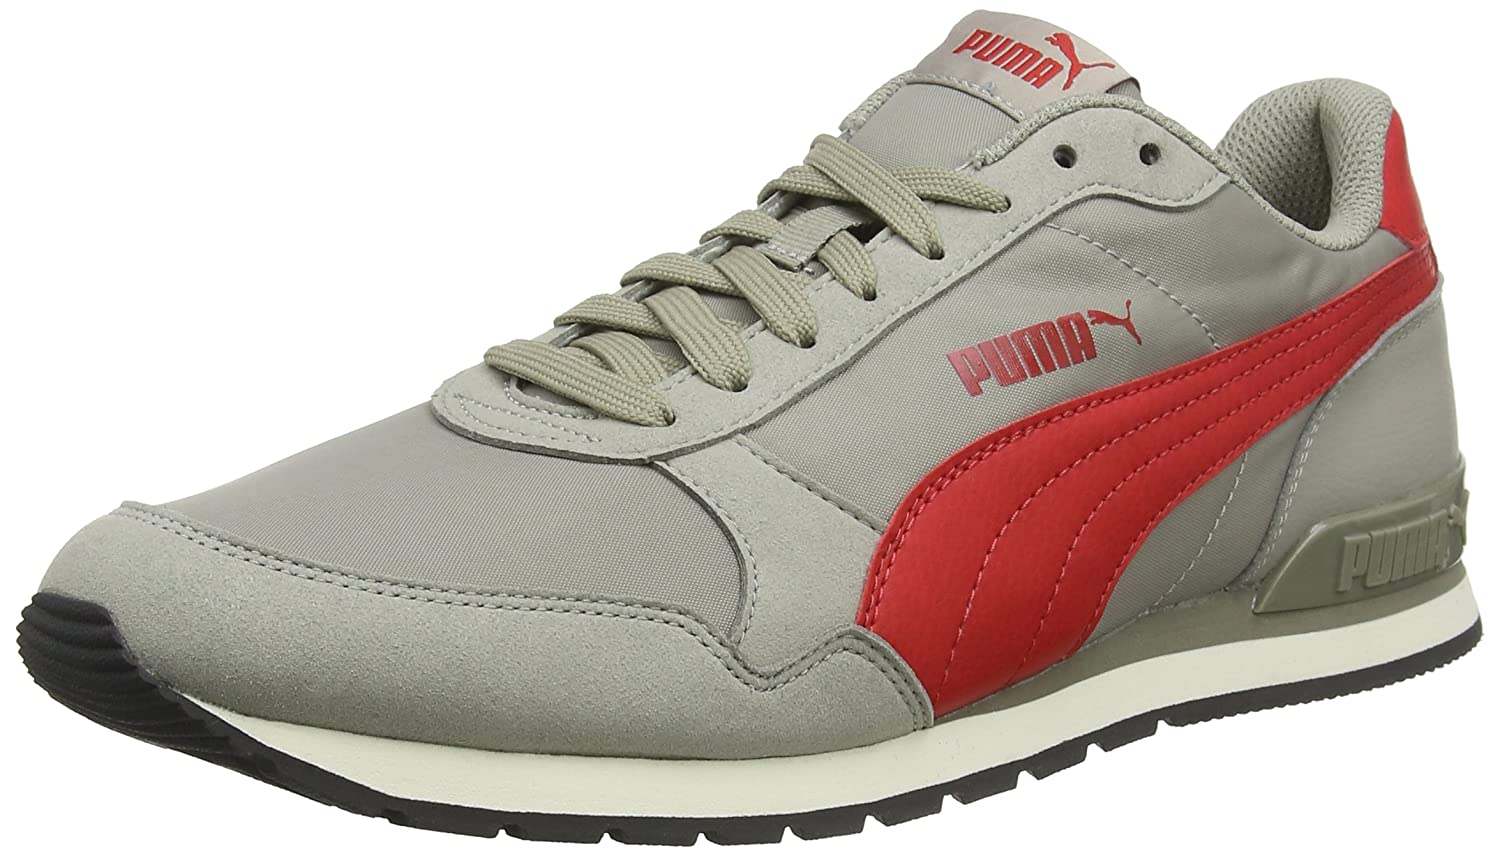 9d8fdf9731 Puma Unisex Adults  St Runner V2 Nl Cross Trainers  Amazon.co.uk ...